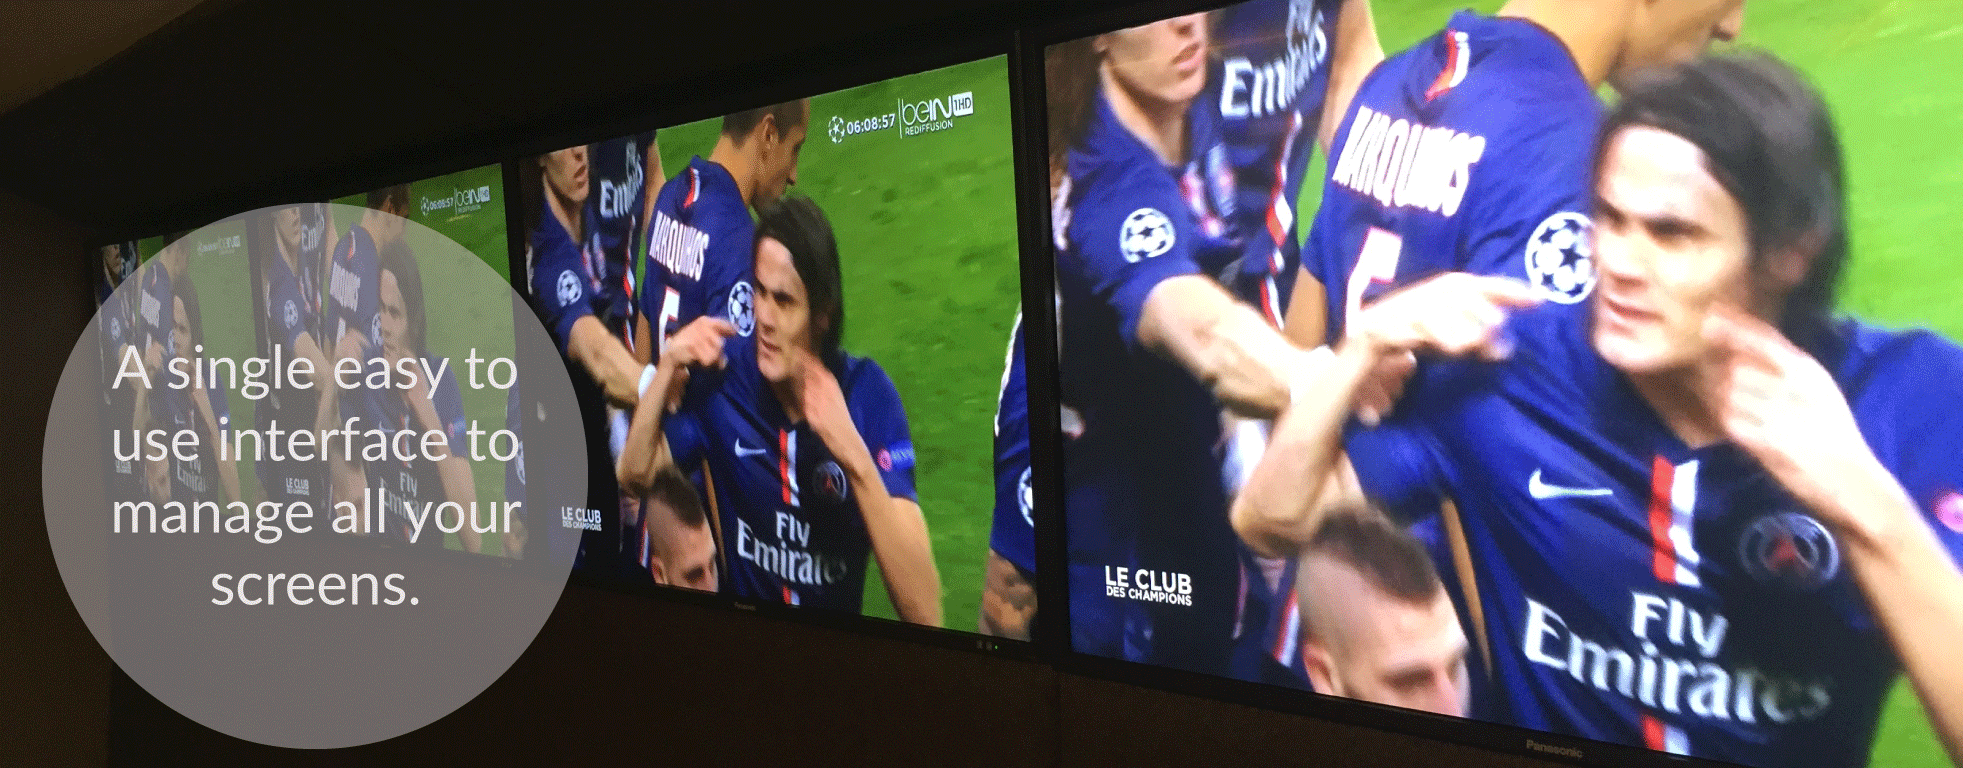 venue psg iptv digital signage video wall stadium